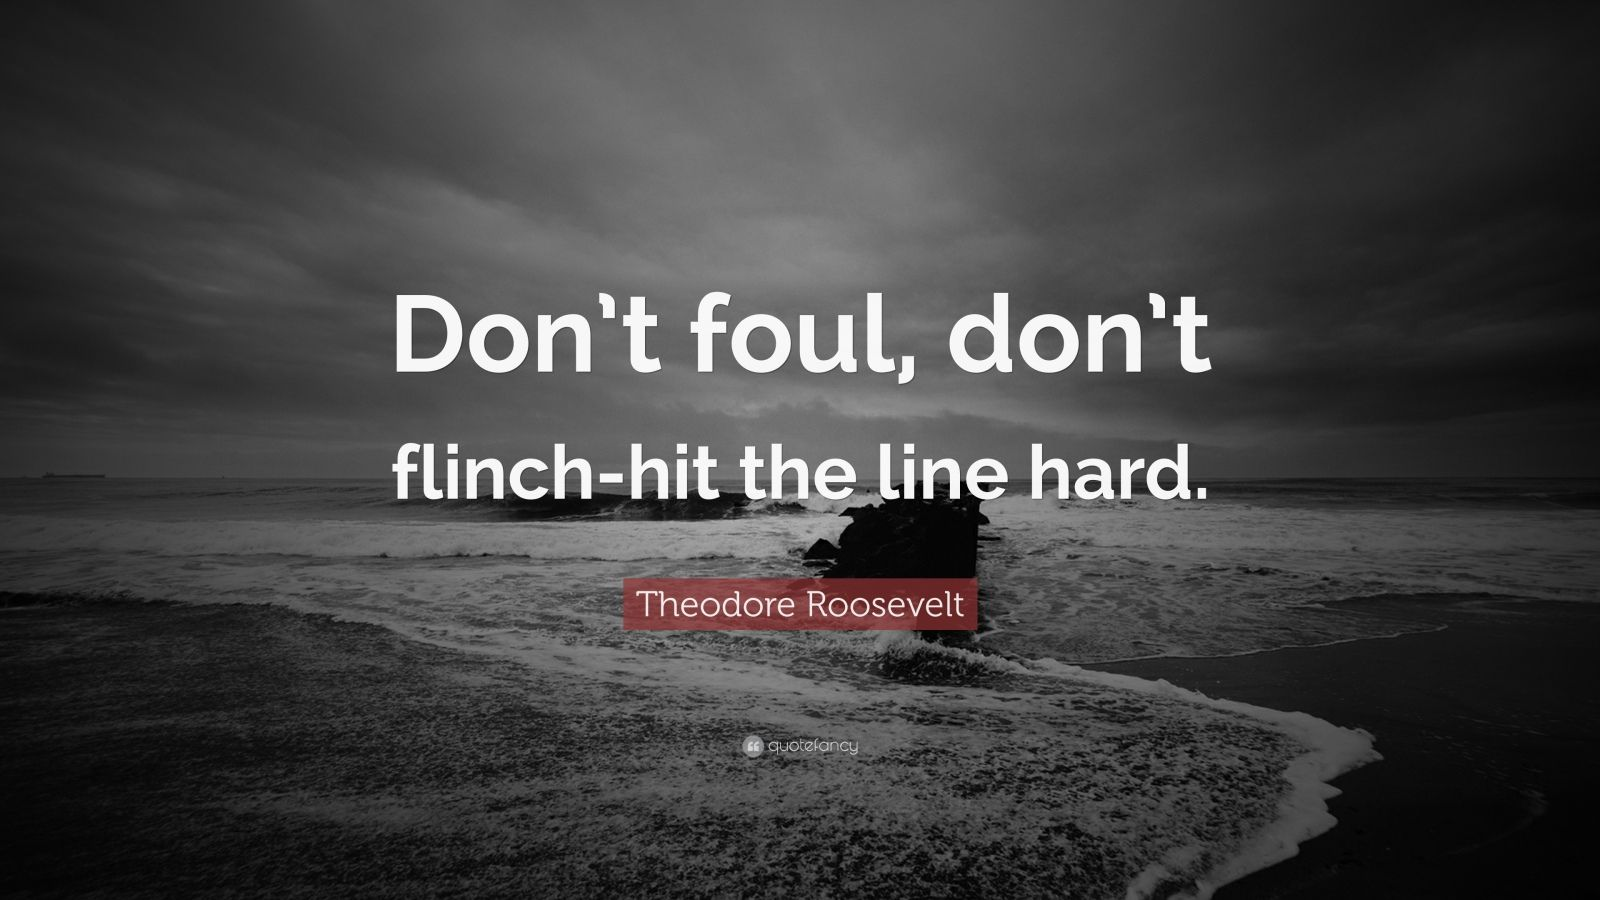 Theodore Roosevelt Quotes Entrancing Theodore Roosevelt Quotes 100 Wallpapers  Quotefancy